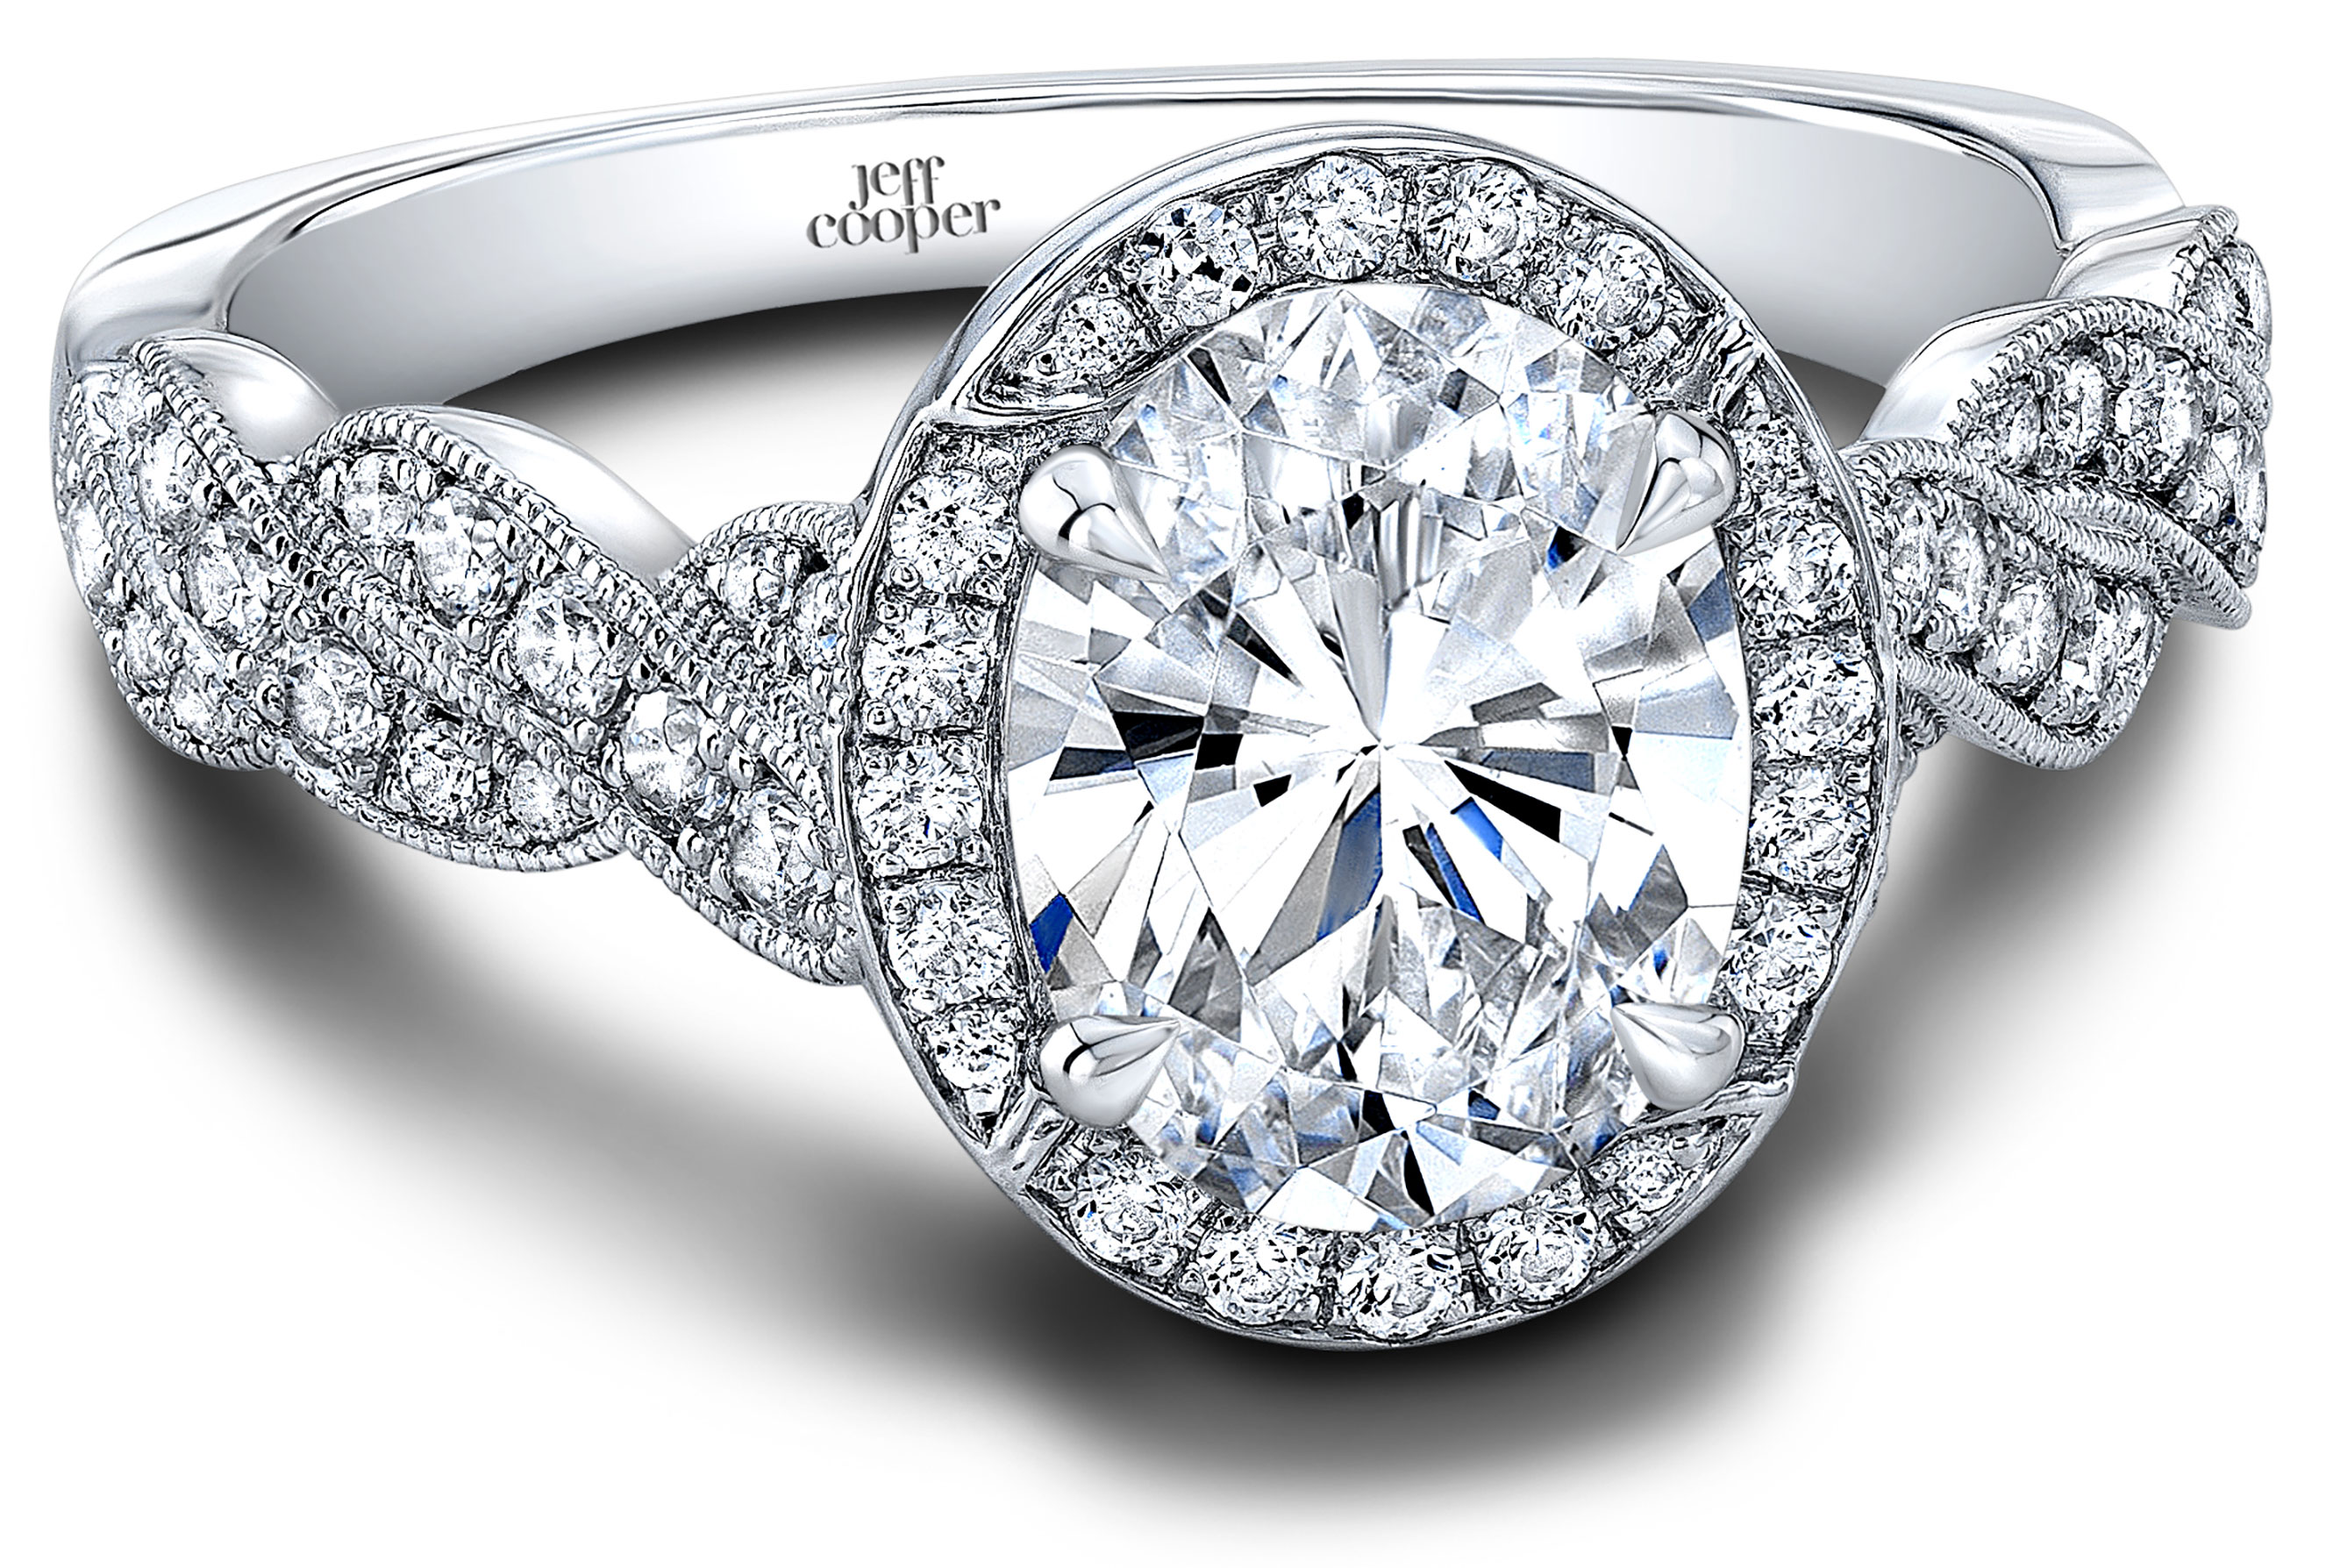 largebanner rings website diamonds lotus official smallbanner engagement chopard intl